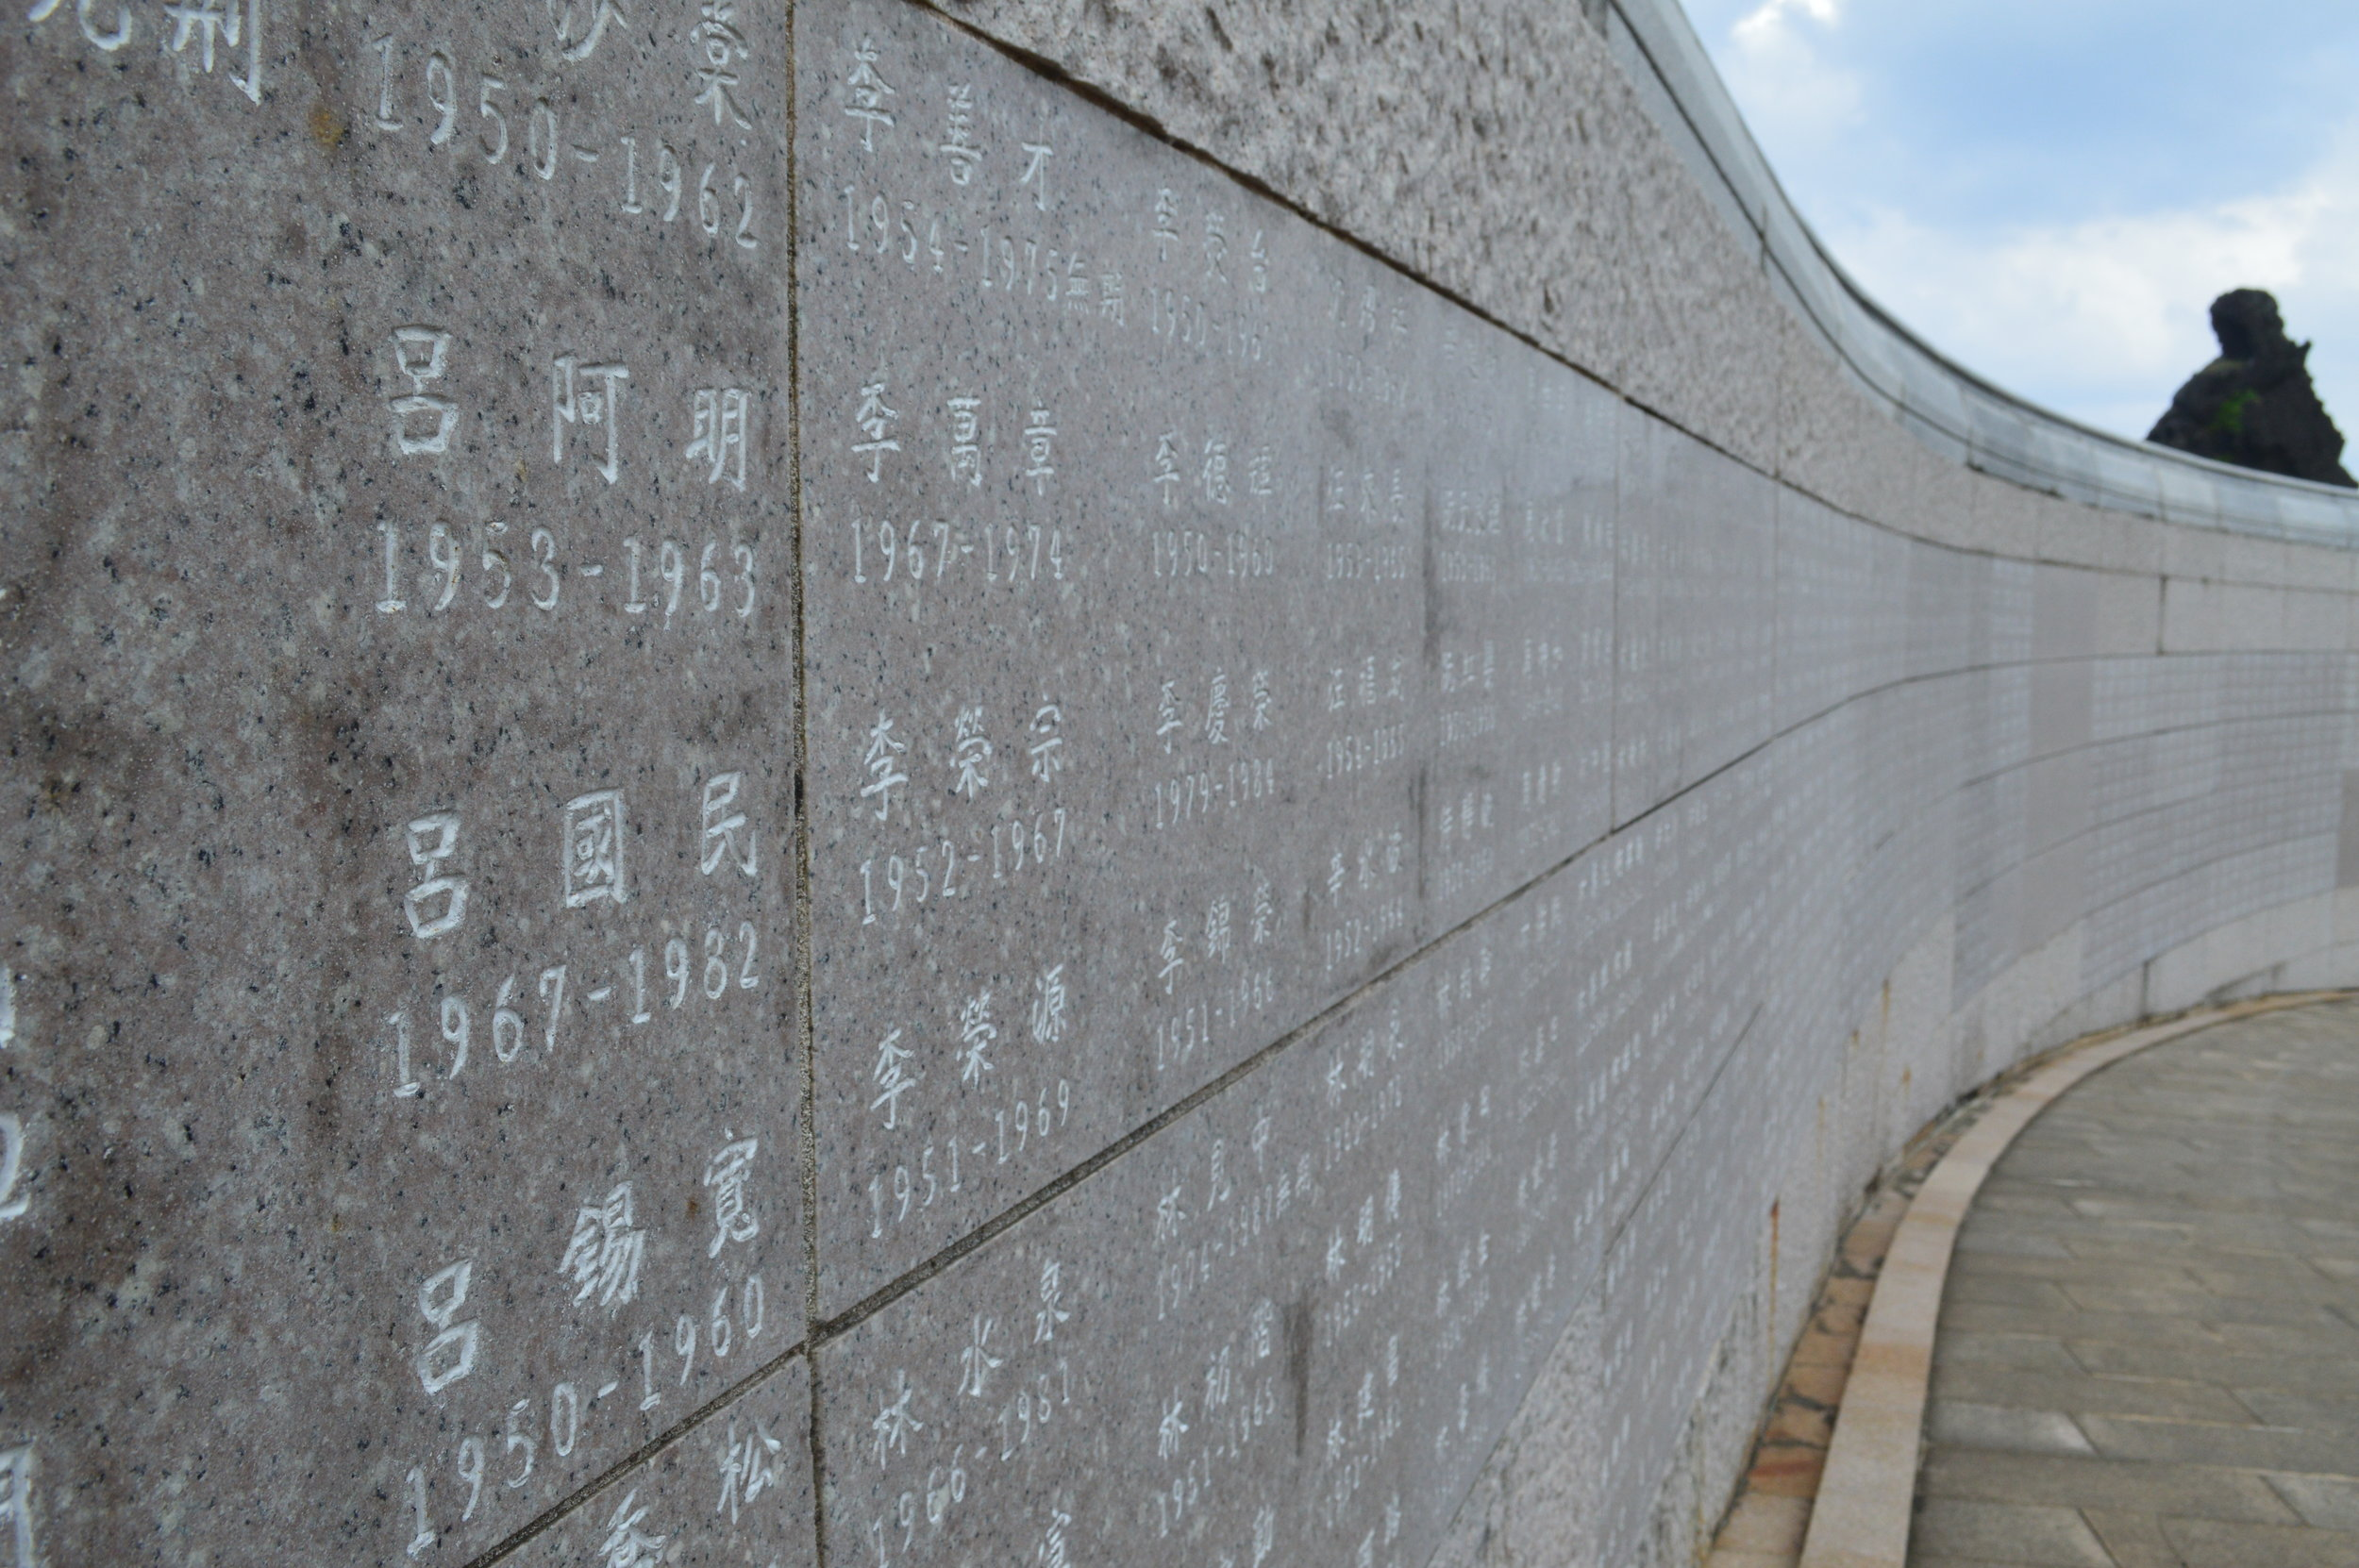 Human Rights Memorial Wall symbolizes the path of human rights taken by every victim